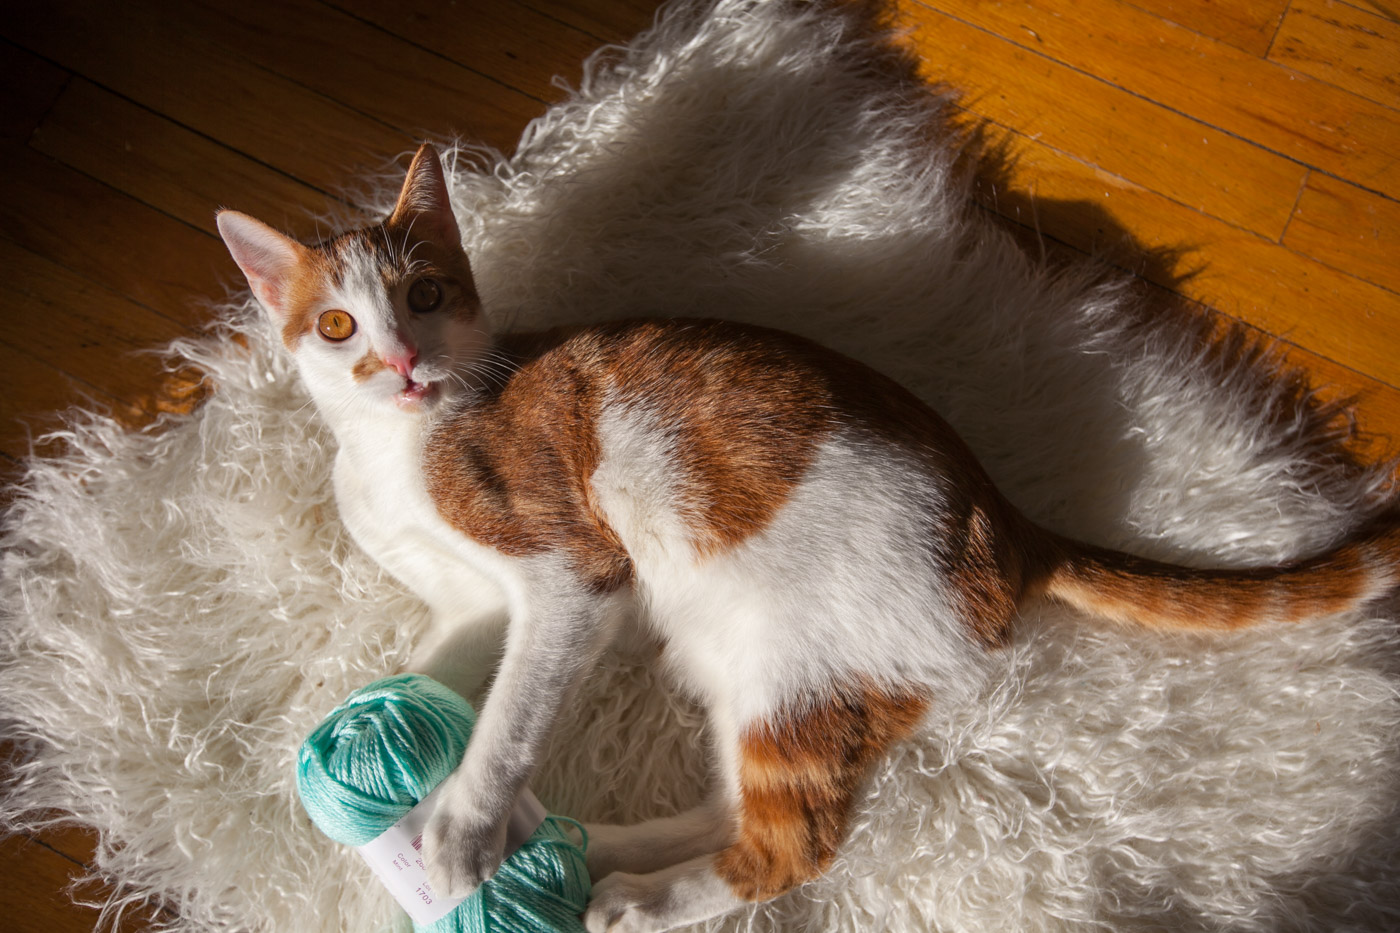 Knitting with cats: Cat playing with yarn.